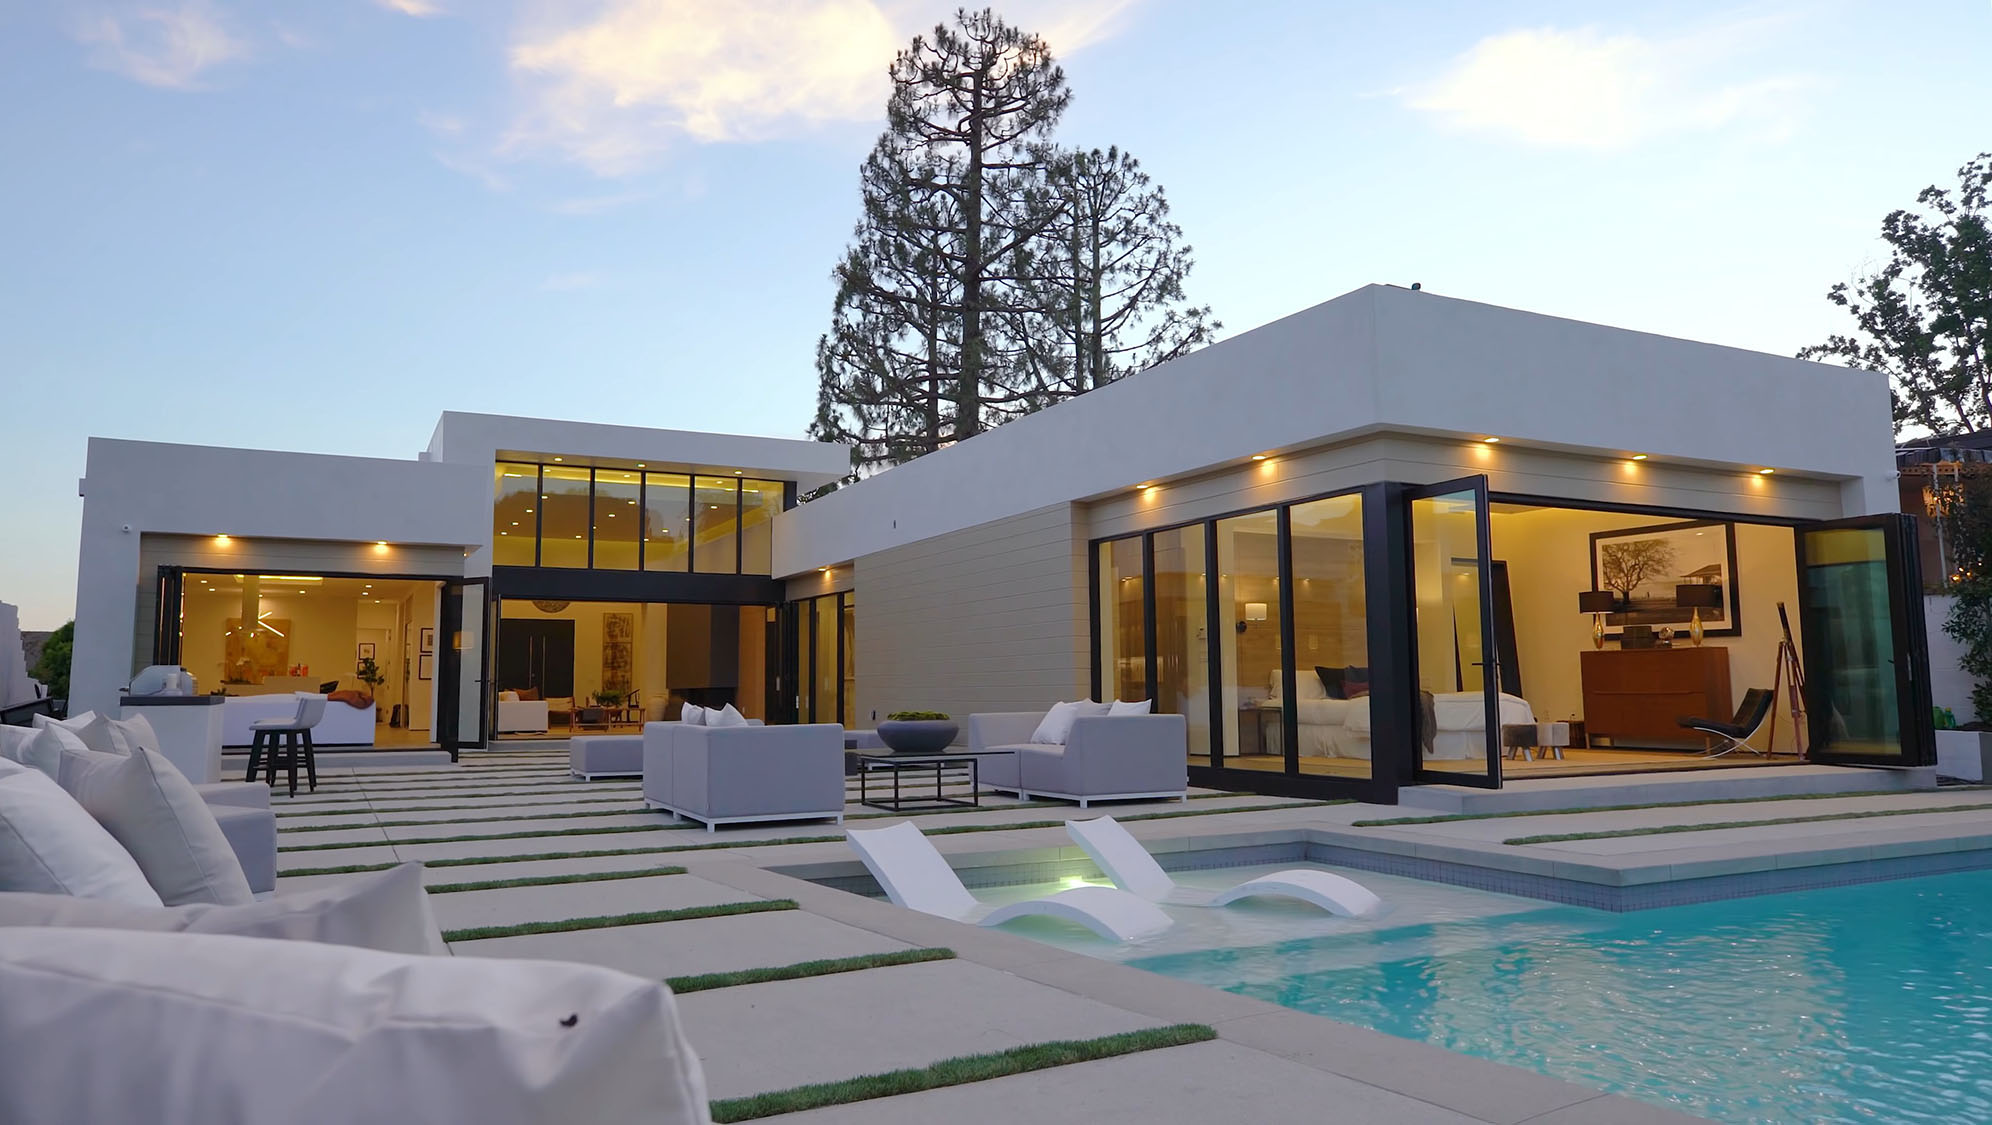 Beautiful contemporary style home with a mix of white and tan stucco, black frame windows and a flat roof.